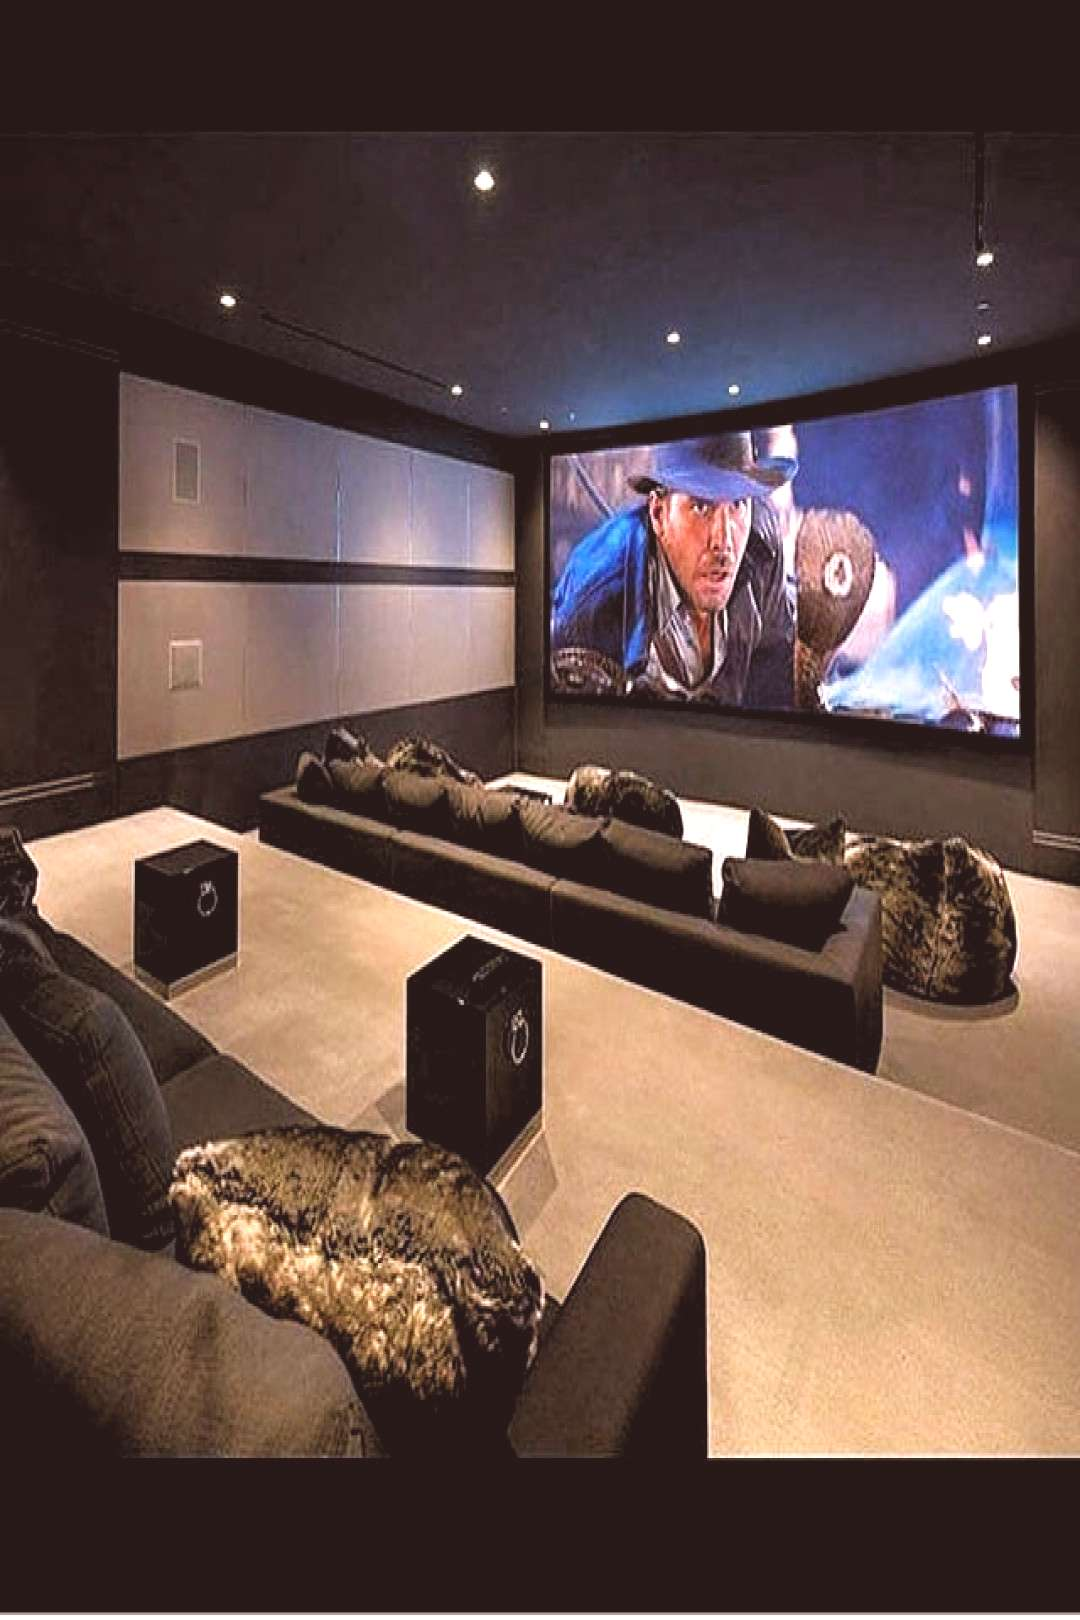 40+ Awesome Basement Home Theater Design Ideas - Luxury Interiors - 40+ Awesome Basement Home Thea